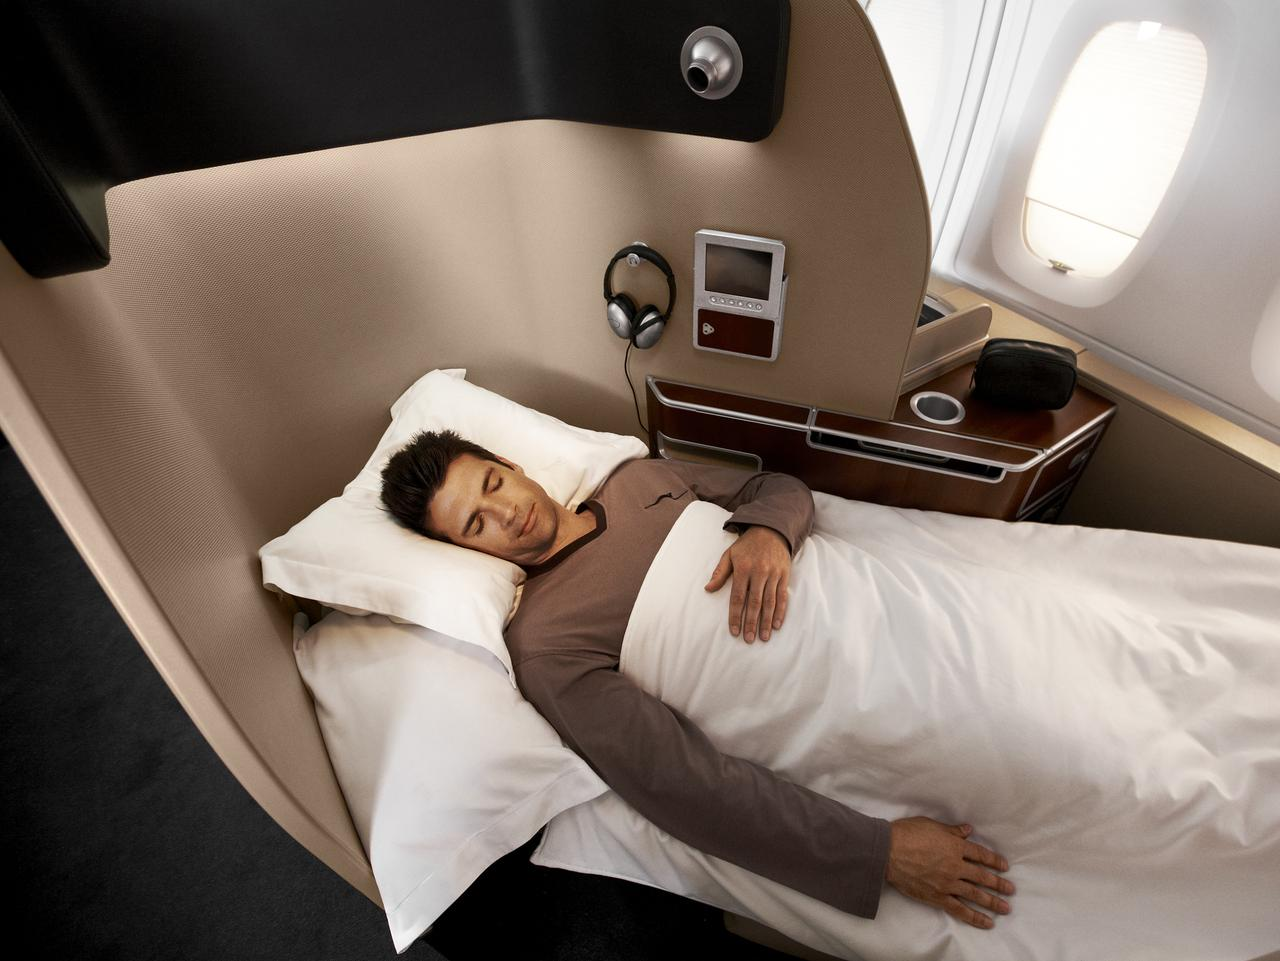 Supplied Travel QANTAS FIRST CLASS Sleeping in the Skybed of the First Class pod on board the Qantas A380